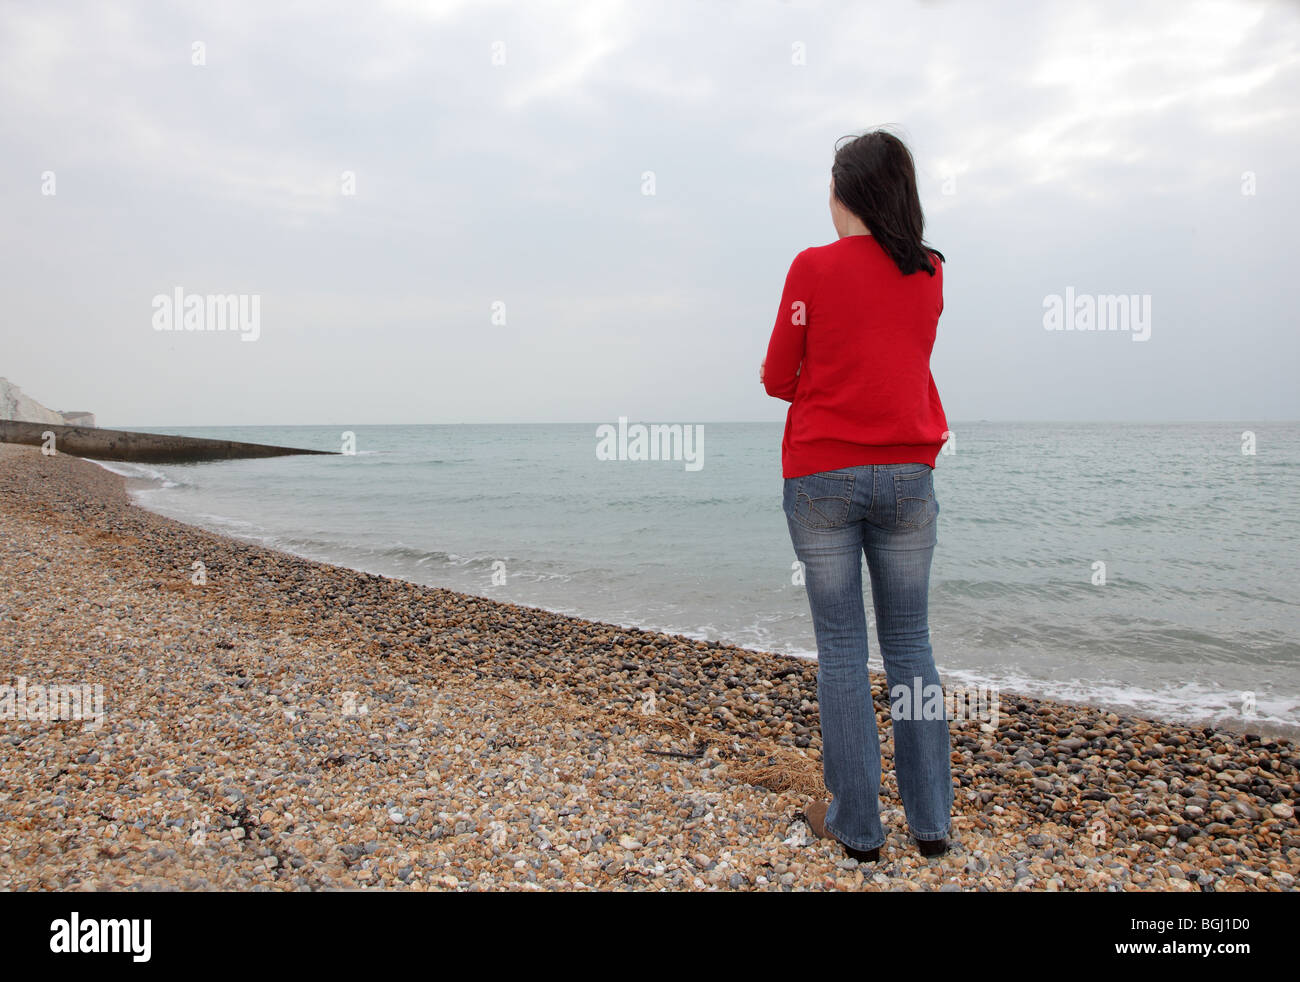 Woman standing on a beach wearing jeans and a red top, back view - Stock Image